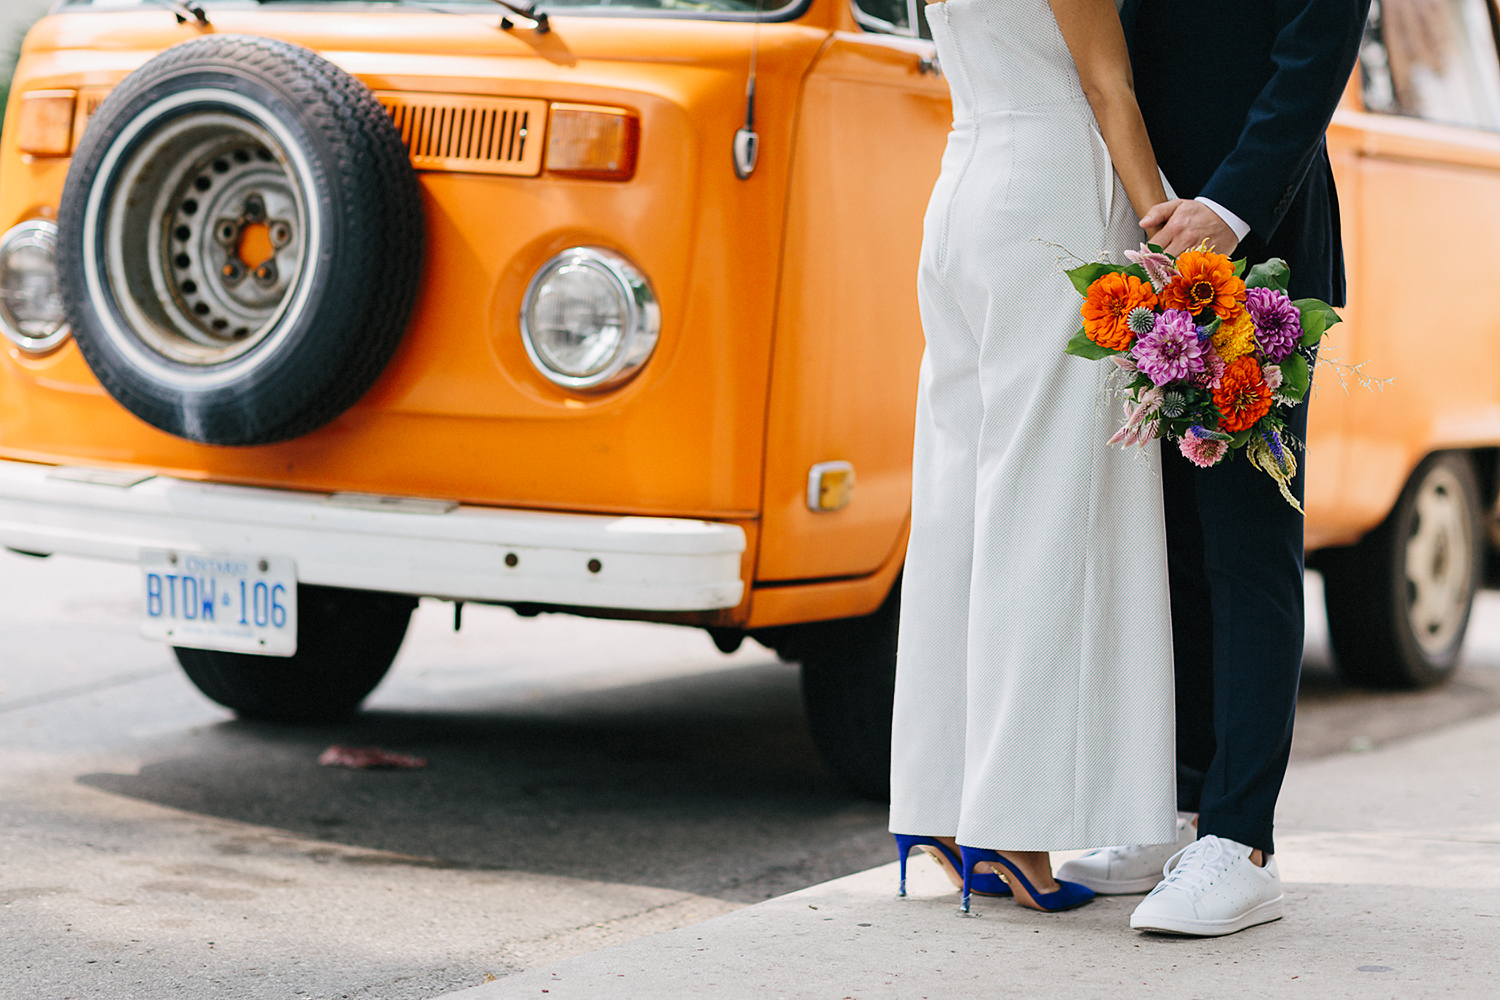 Intimate-Toronto-Pop-Up-Elopement-Downtown-Urban-Kensington-film-analog-photography-toronto-wedding-photographers-alternative-hipster-bride-and-groom-badass-candid-photos-details-old-van.jpg